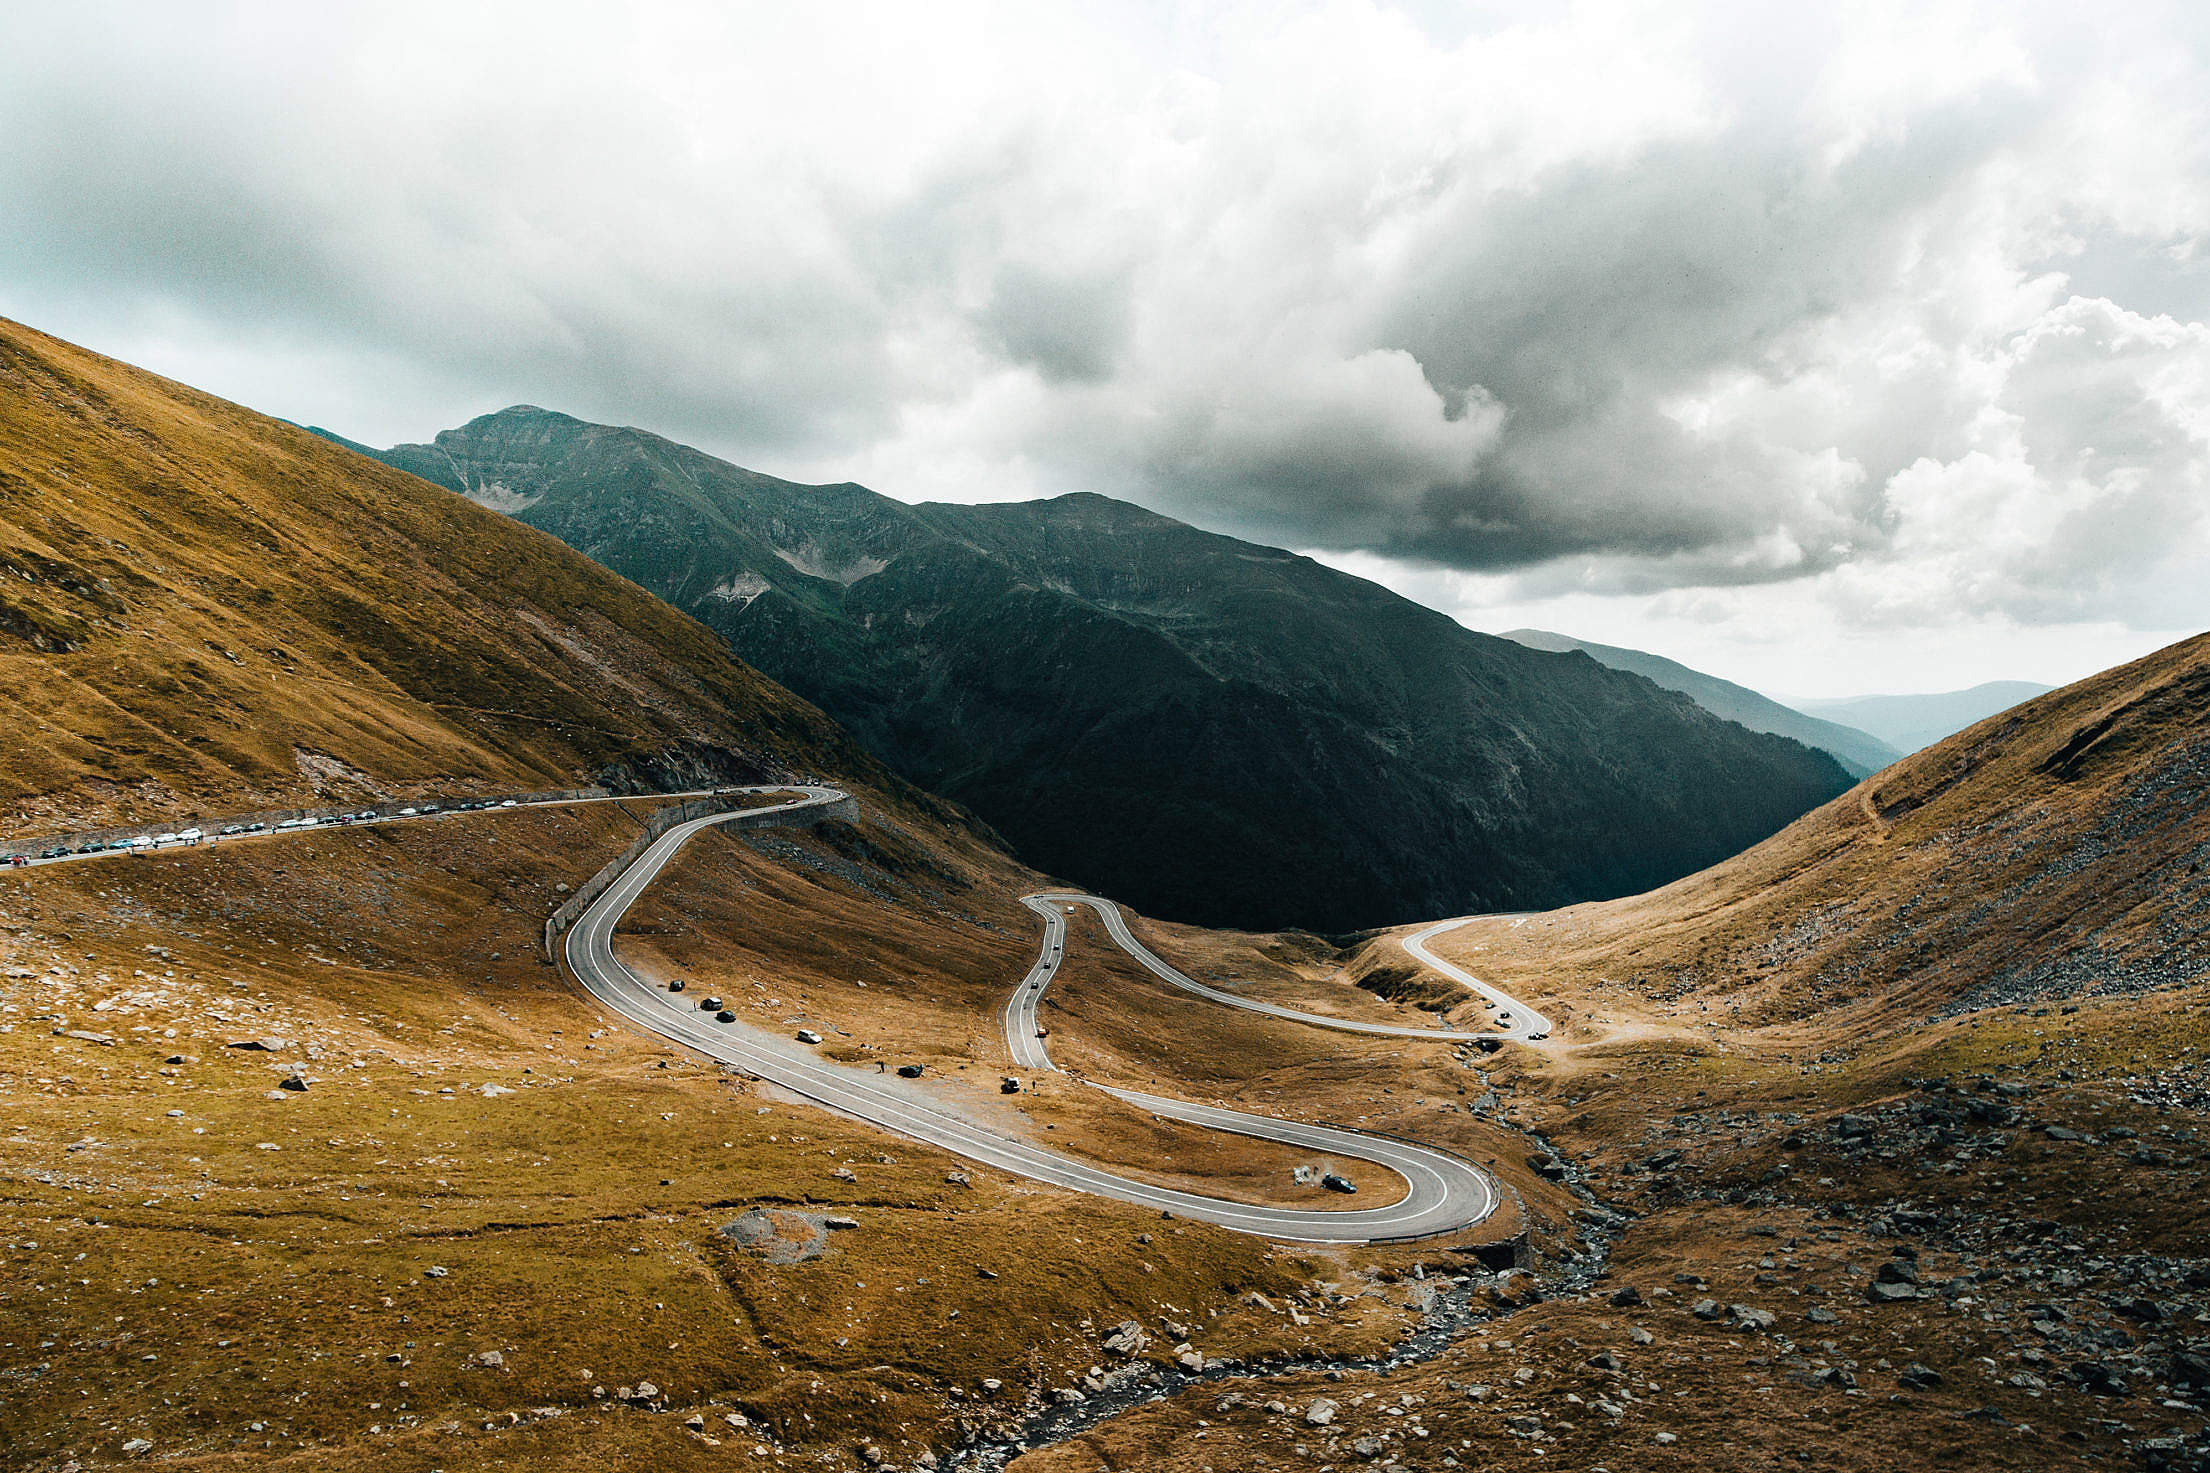 Transfagarasan Road Valley Between the Mountains Free Stock Photo